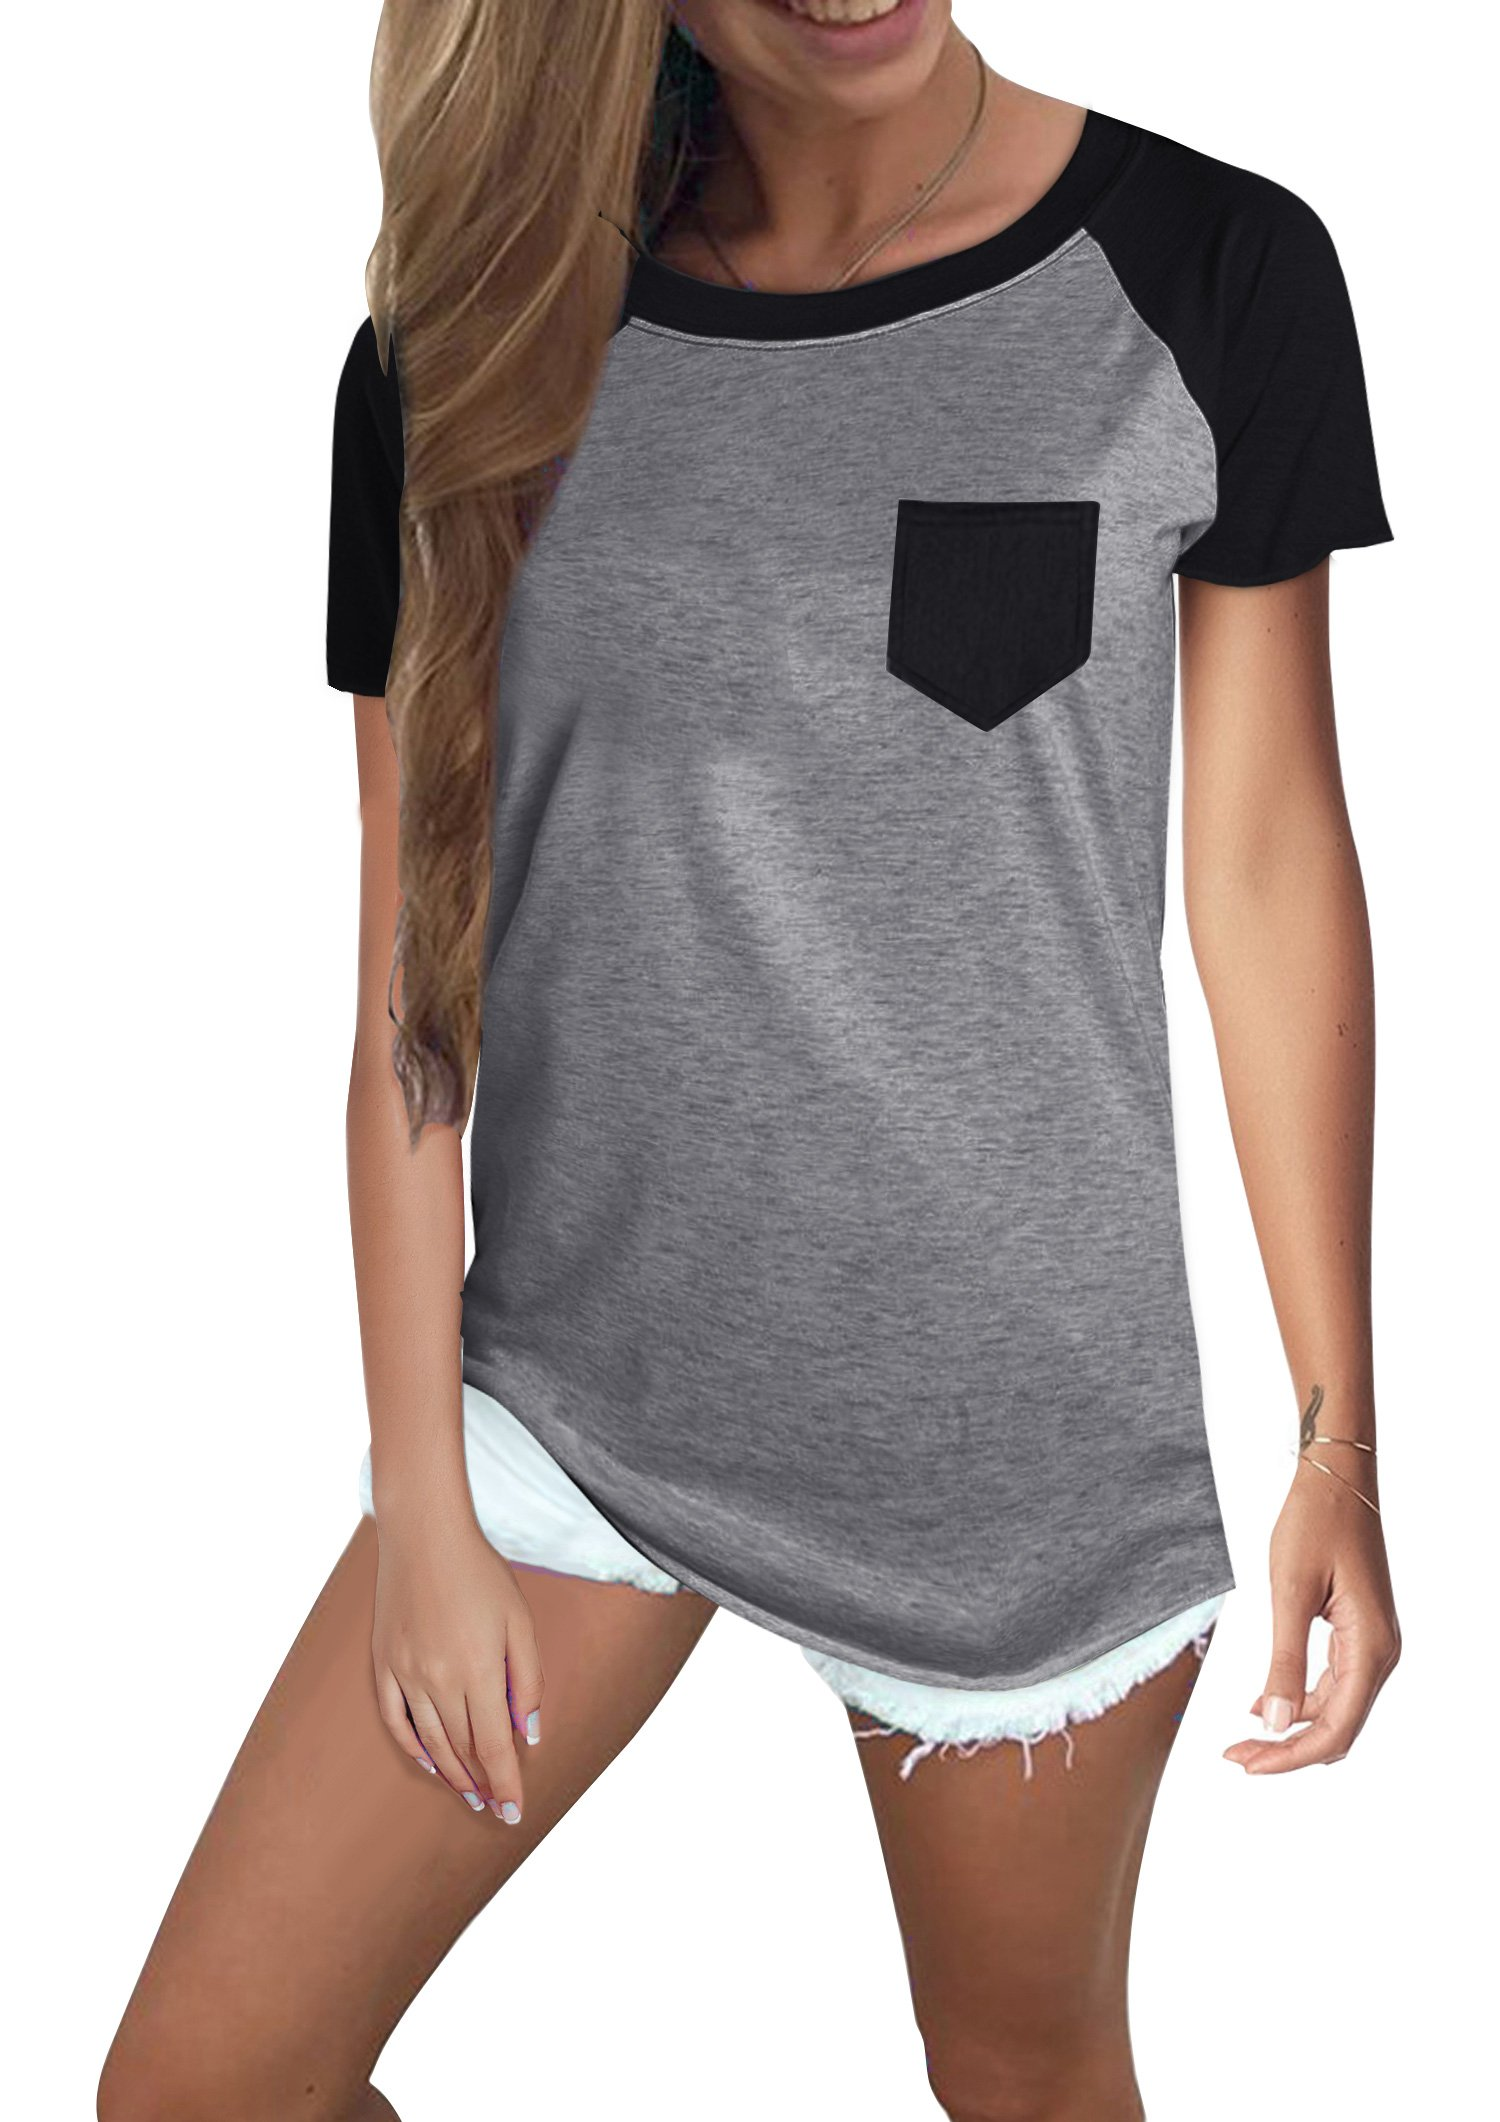 Yidarton Women's T-Shirt Casual Short Sleeve Round Neck Blouse Color Block Tops with Pocket (Grey, X-Large)